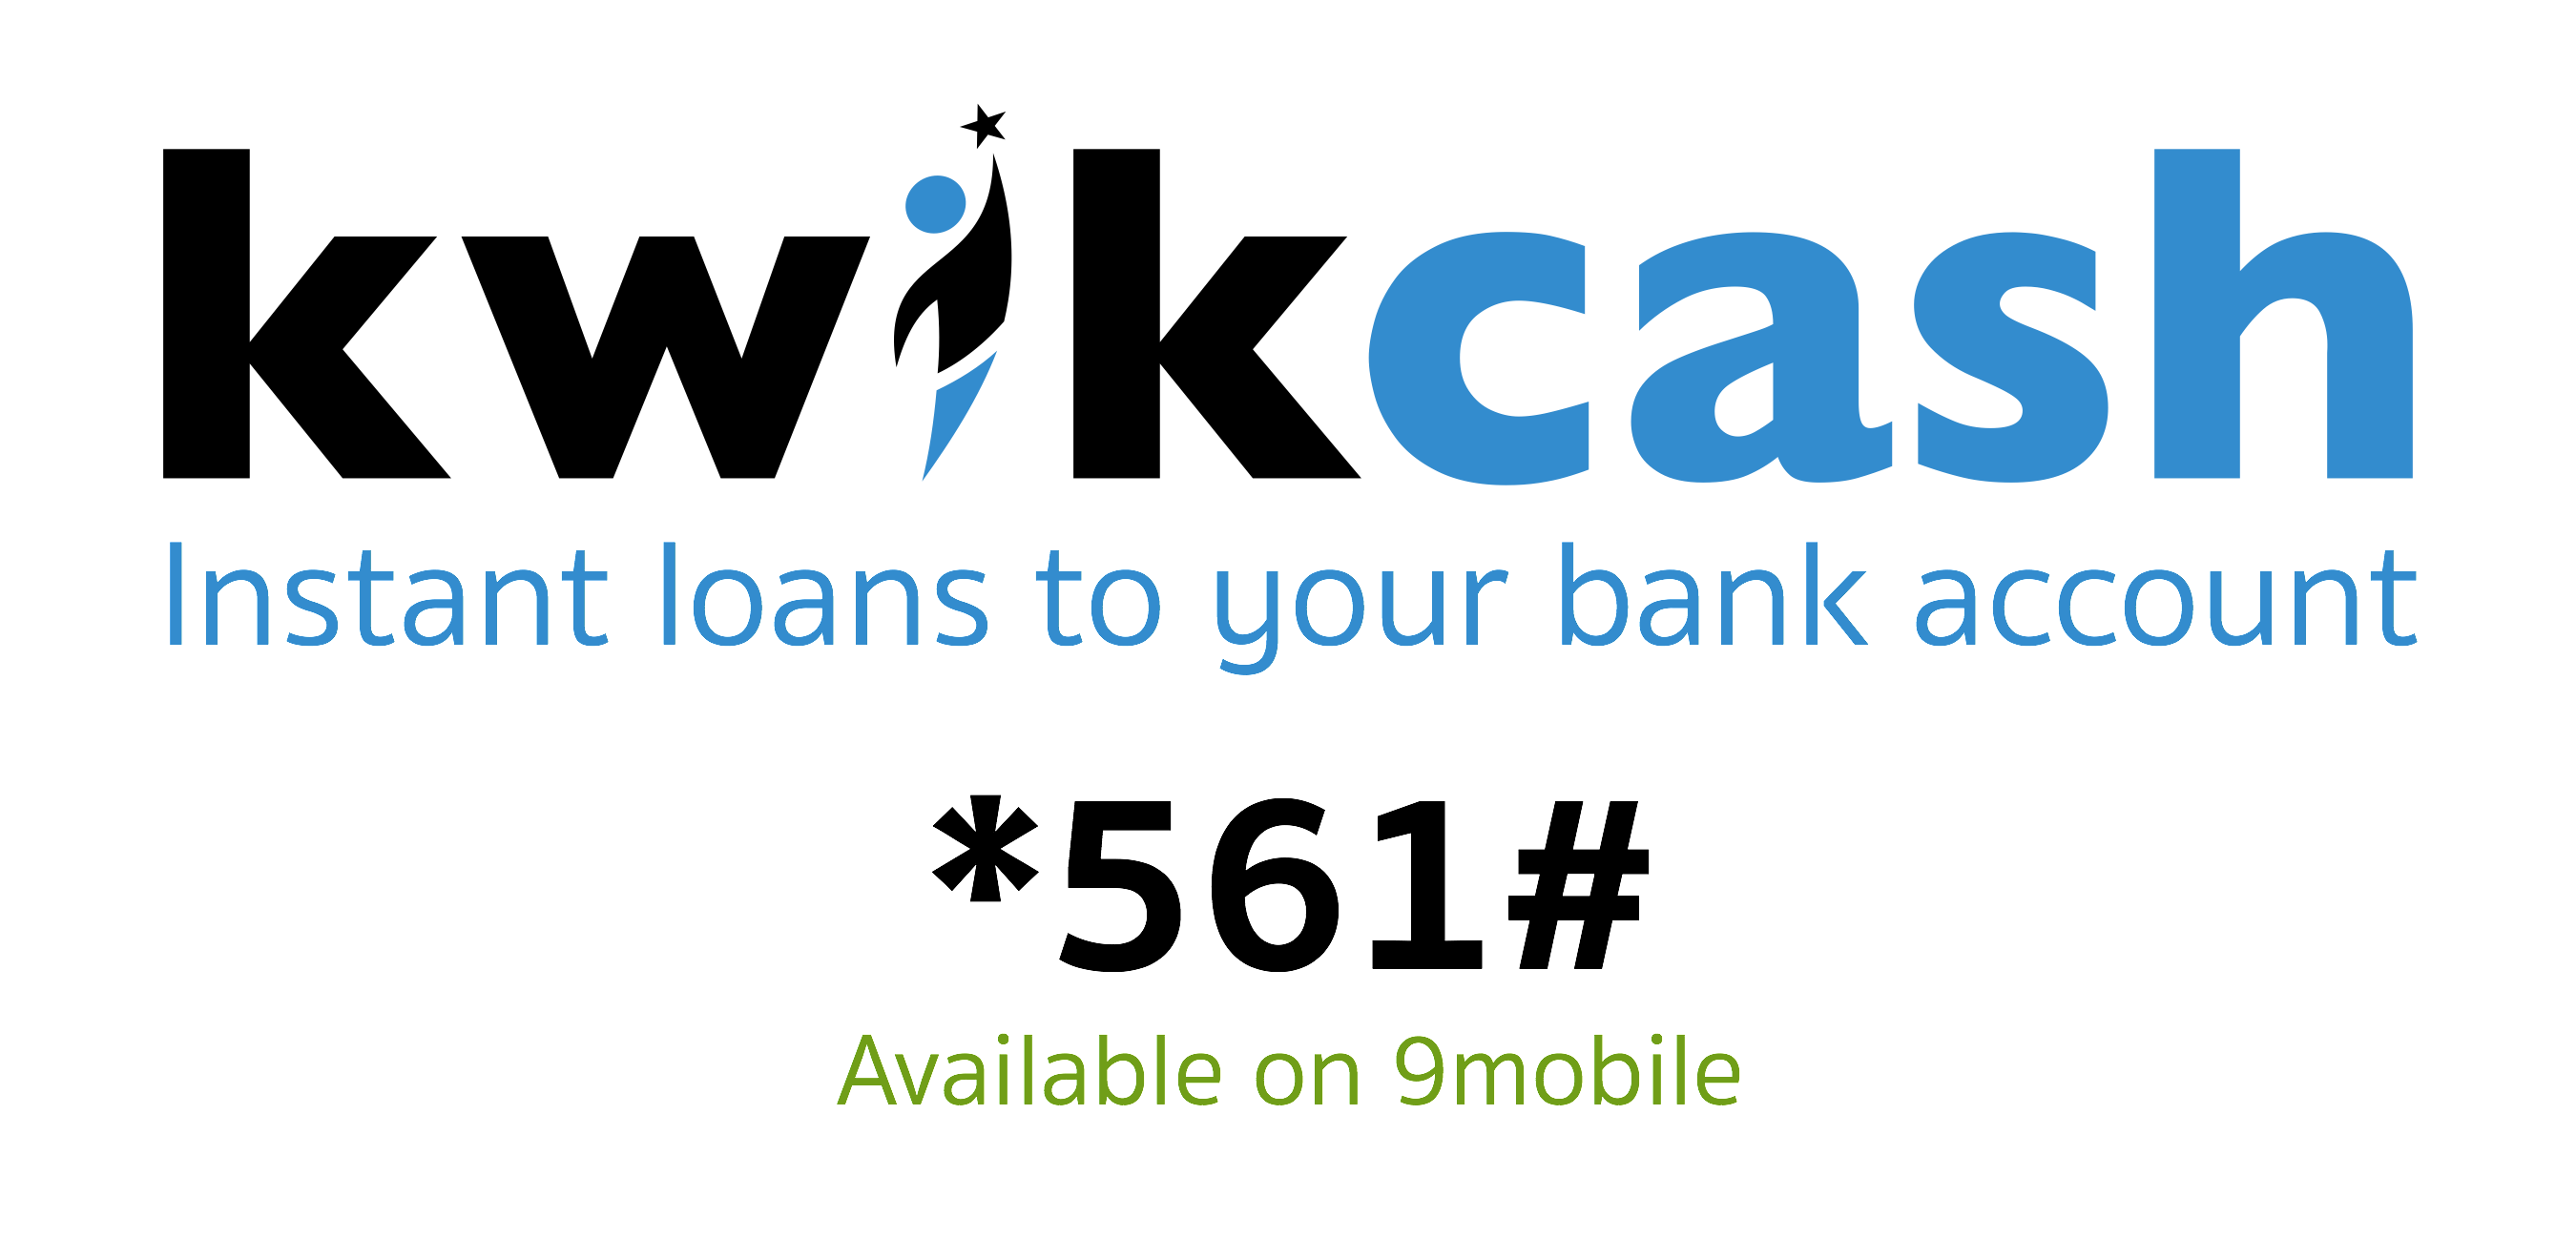 Kwik Cash: Get free loan with 9mobile in a second